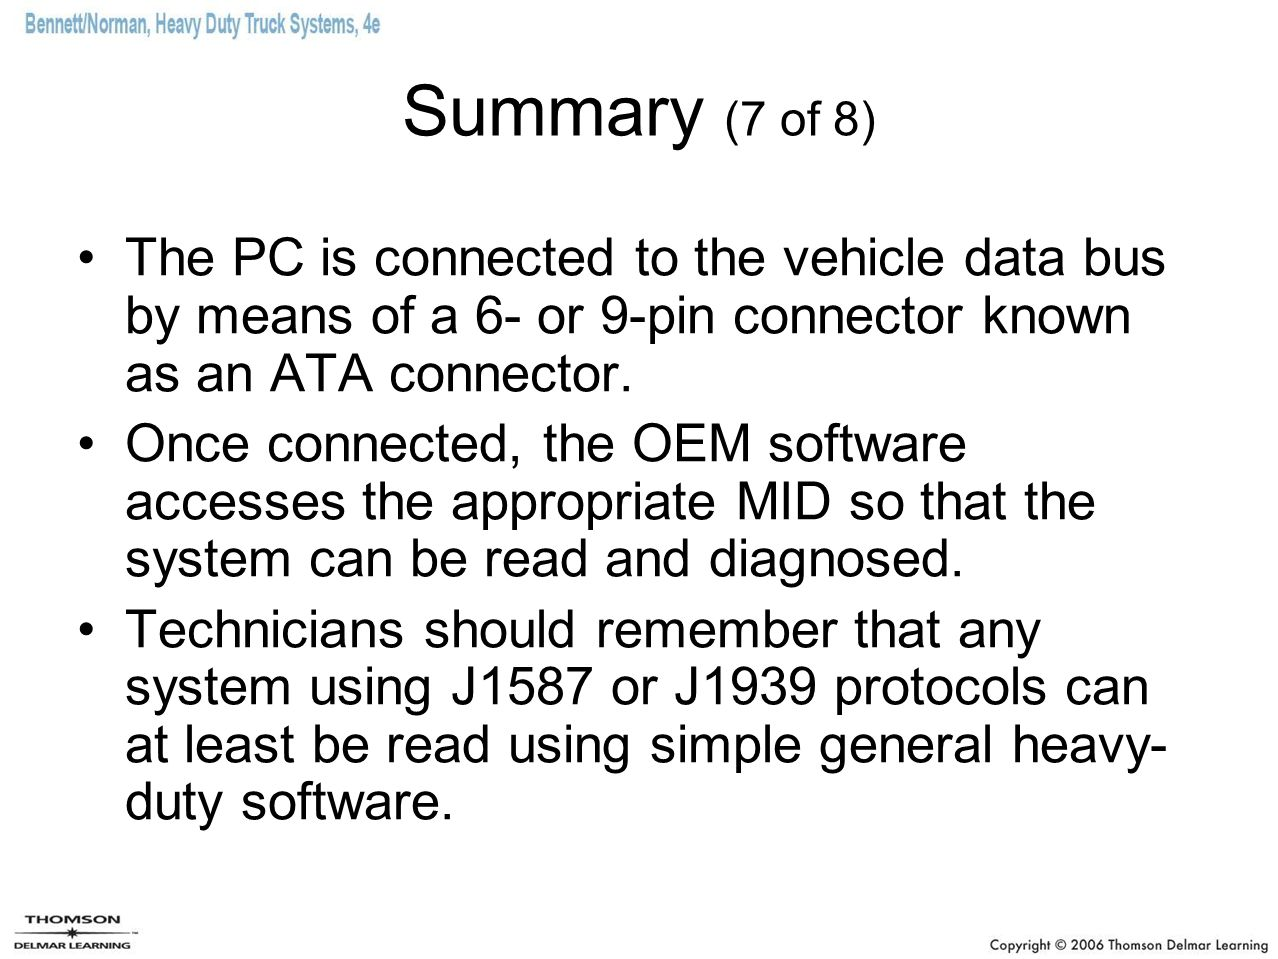 Summary (7 of 8) The PC is connected to the vehicle data bus by means of a 6- or 9-pin connector known as an ATA connector.